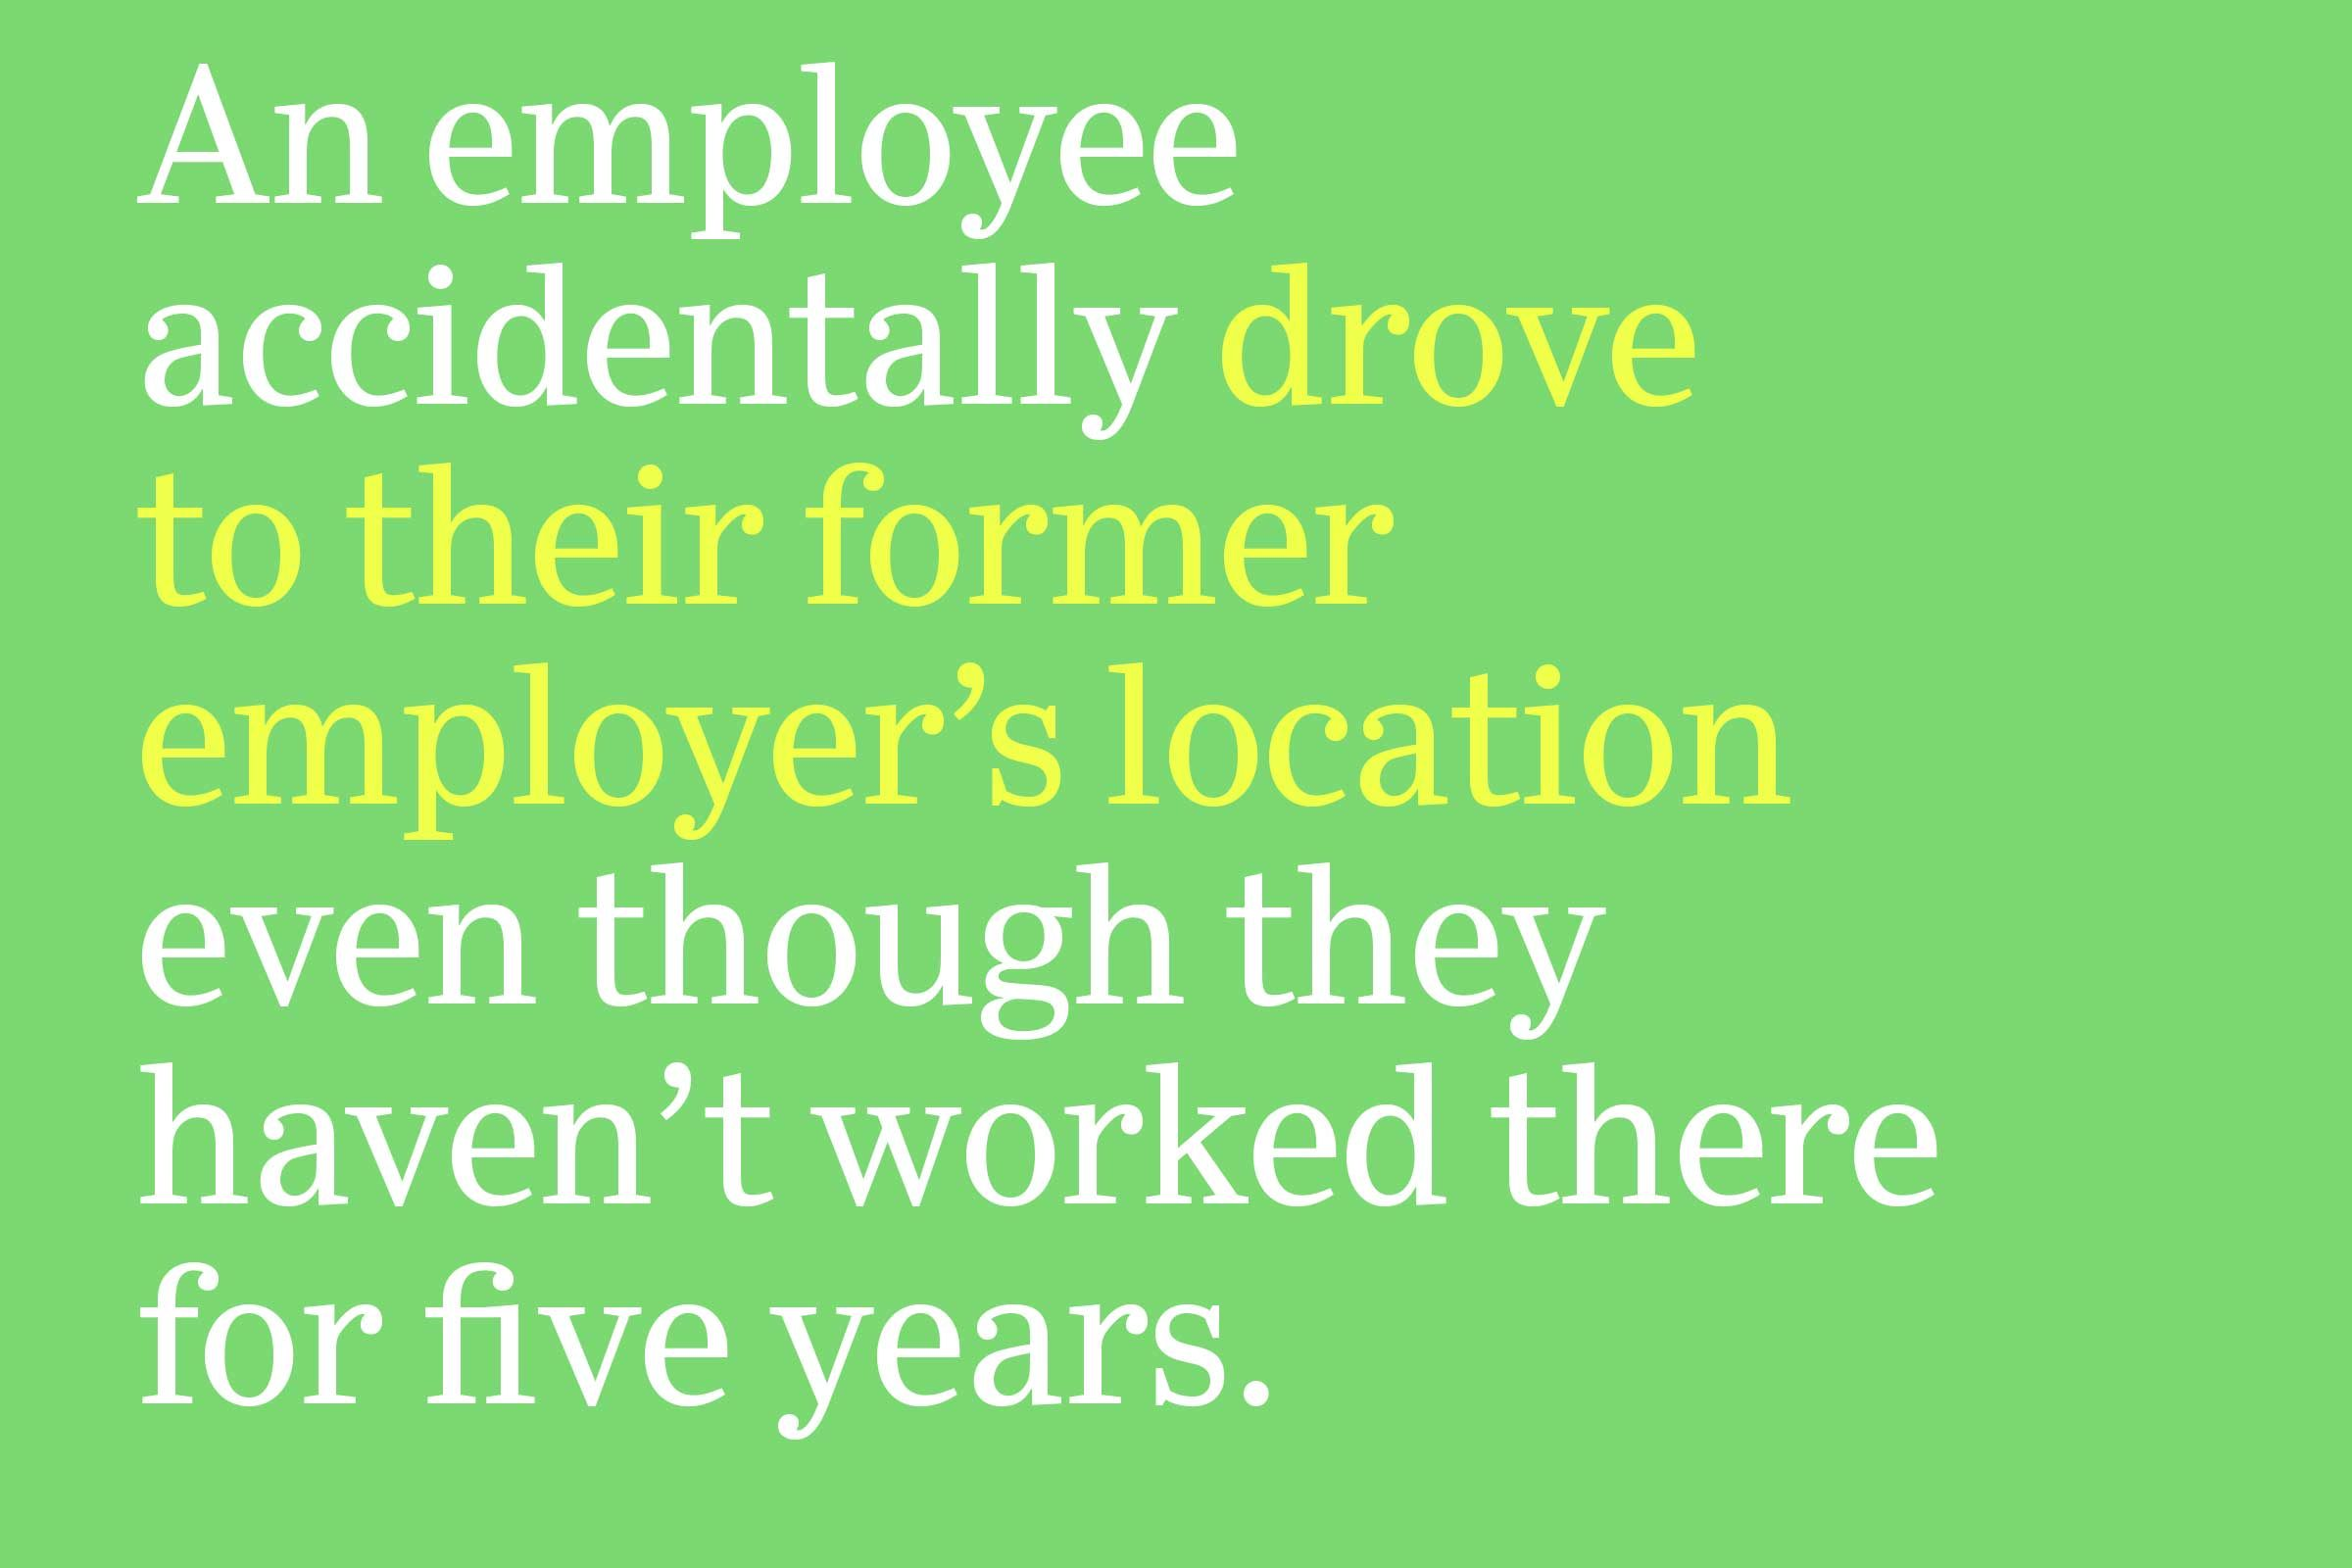 drove to their former employer's location